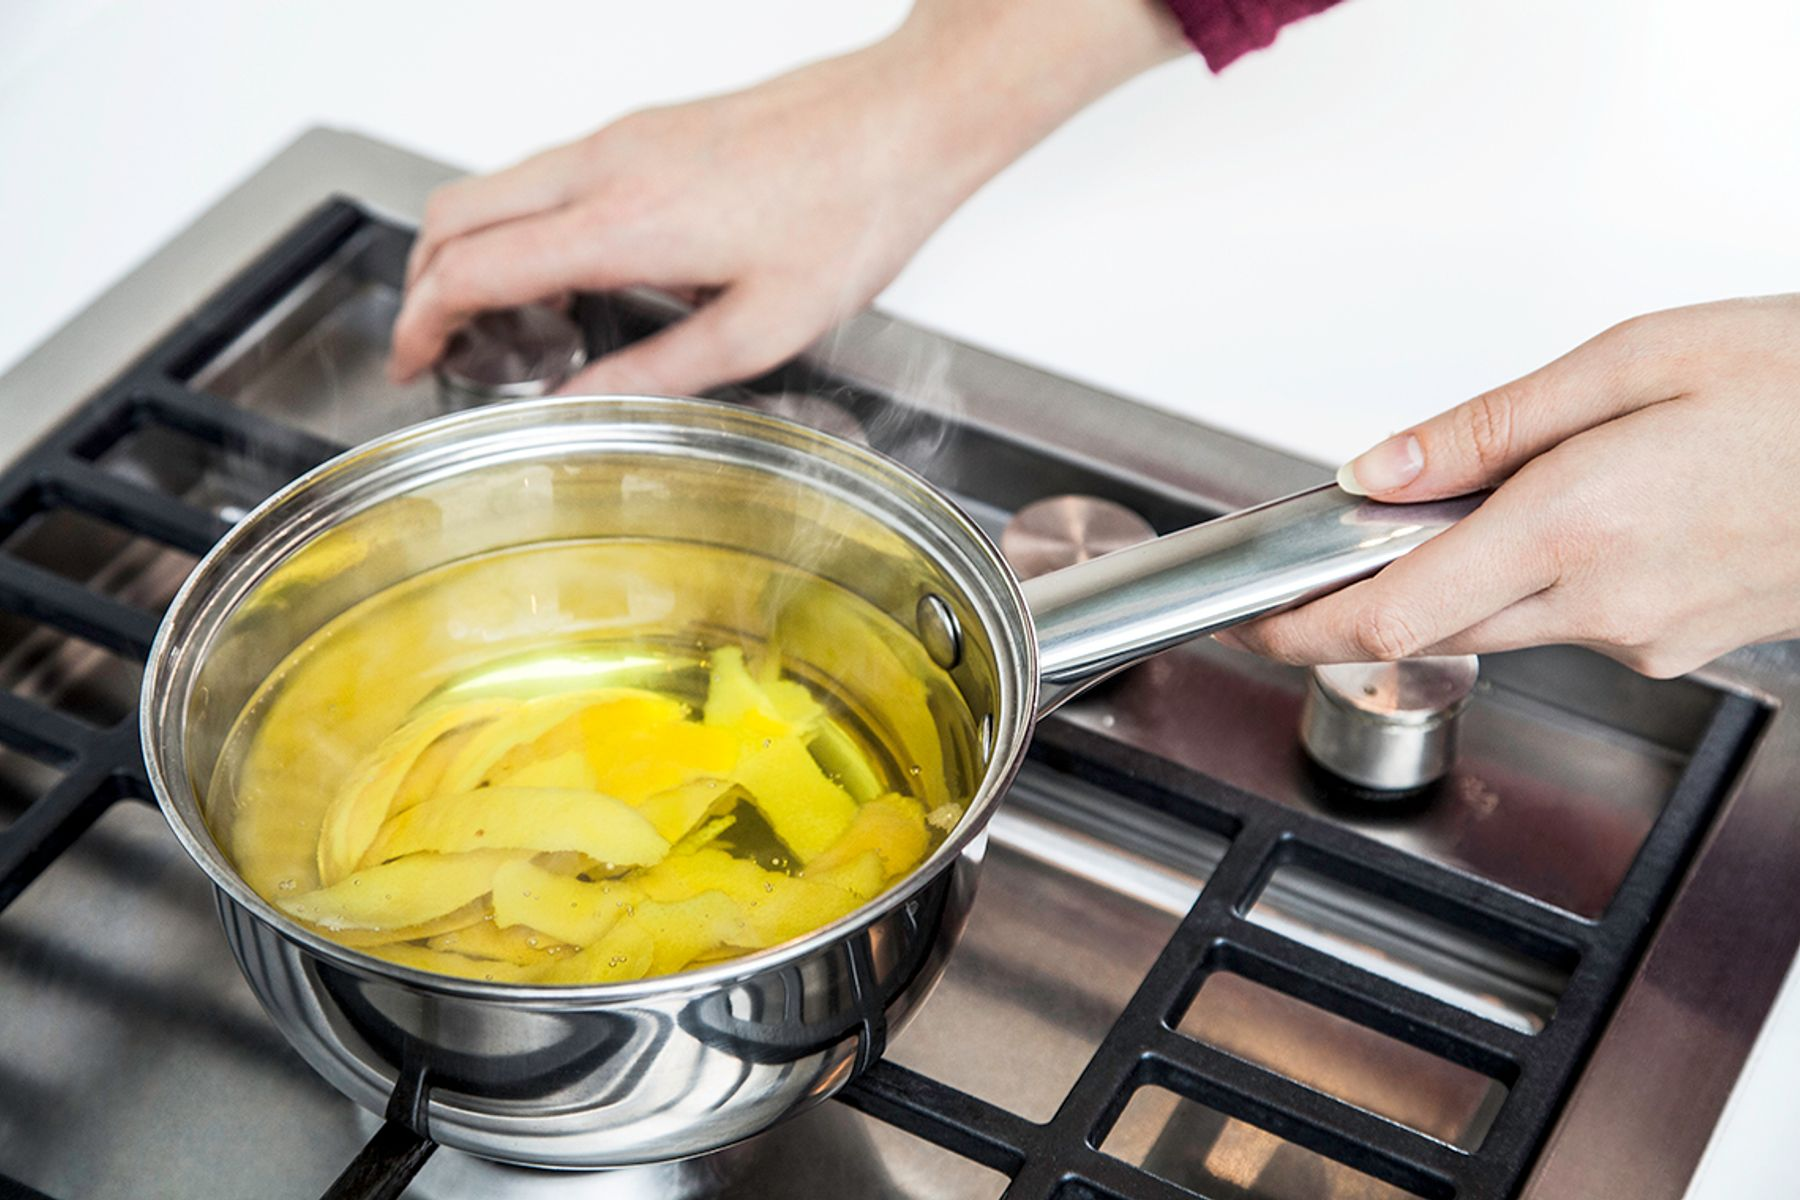 A pan of lemon skins boiling to fragrance a musty smelling house